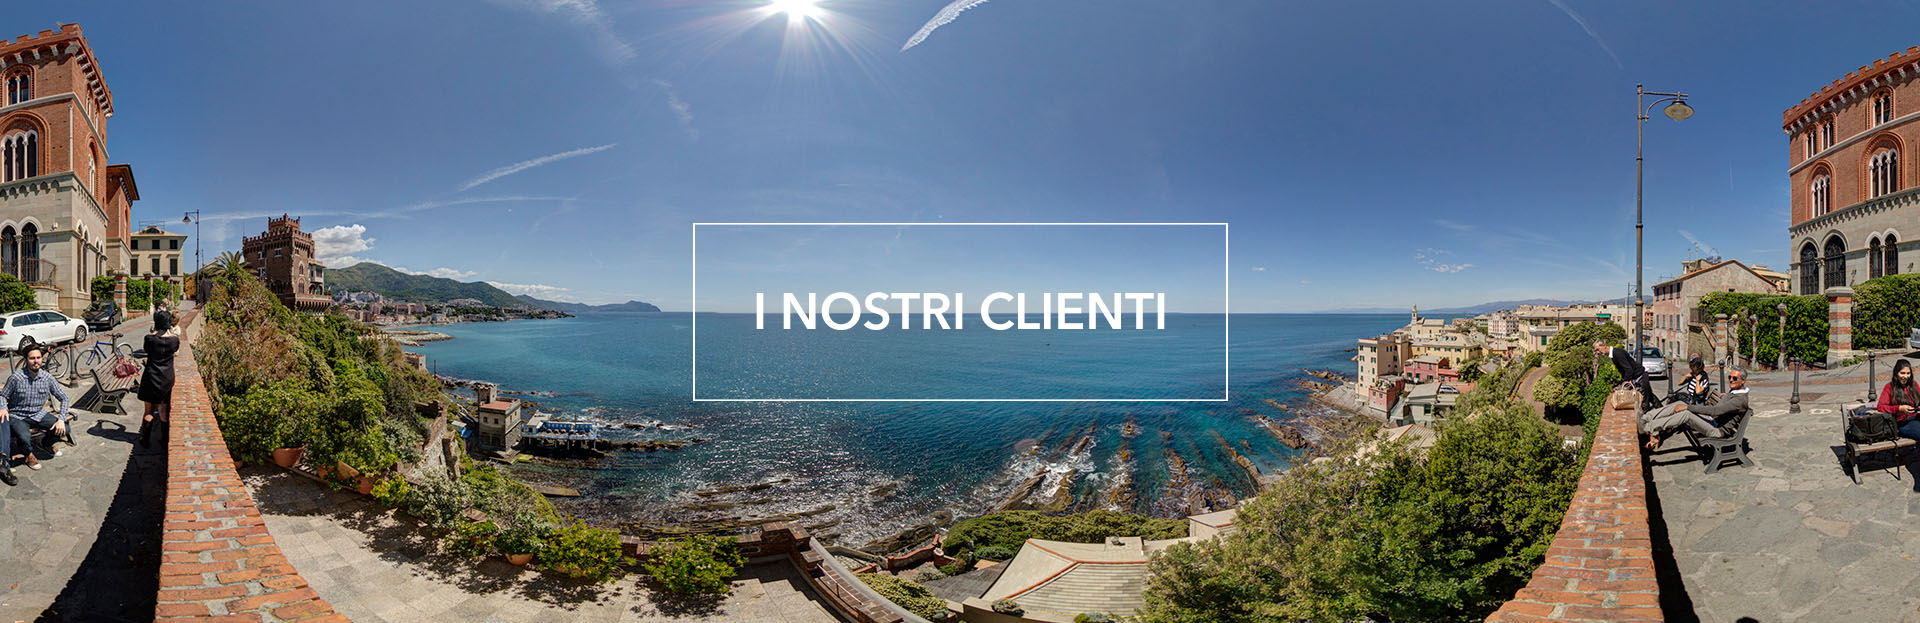 step inside clienti